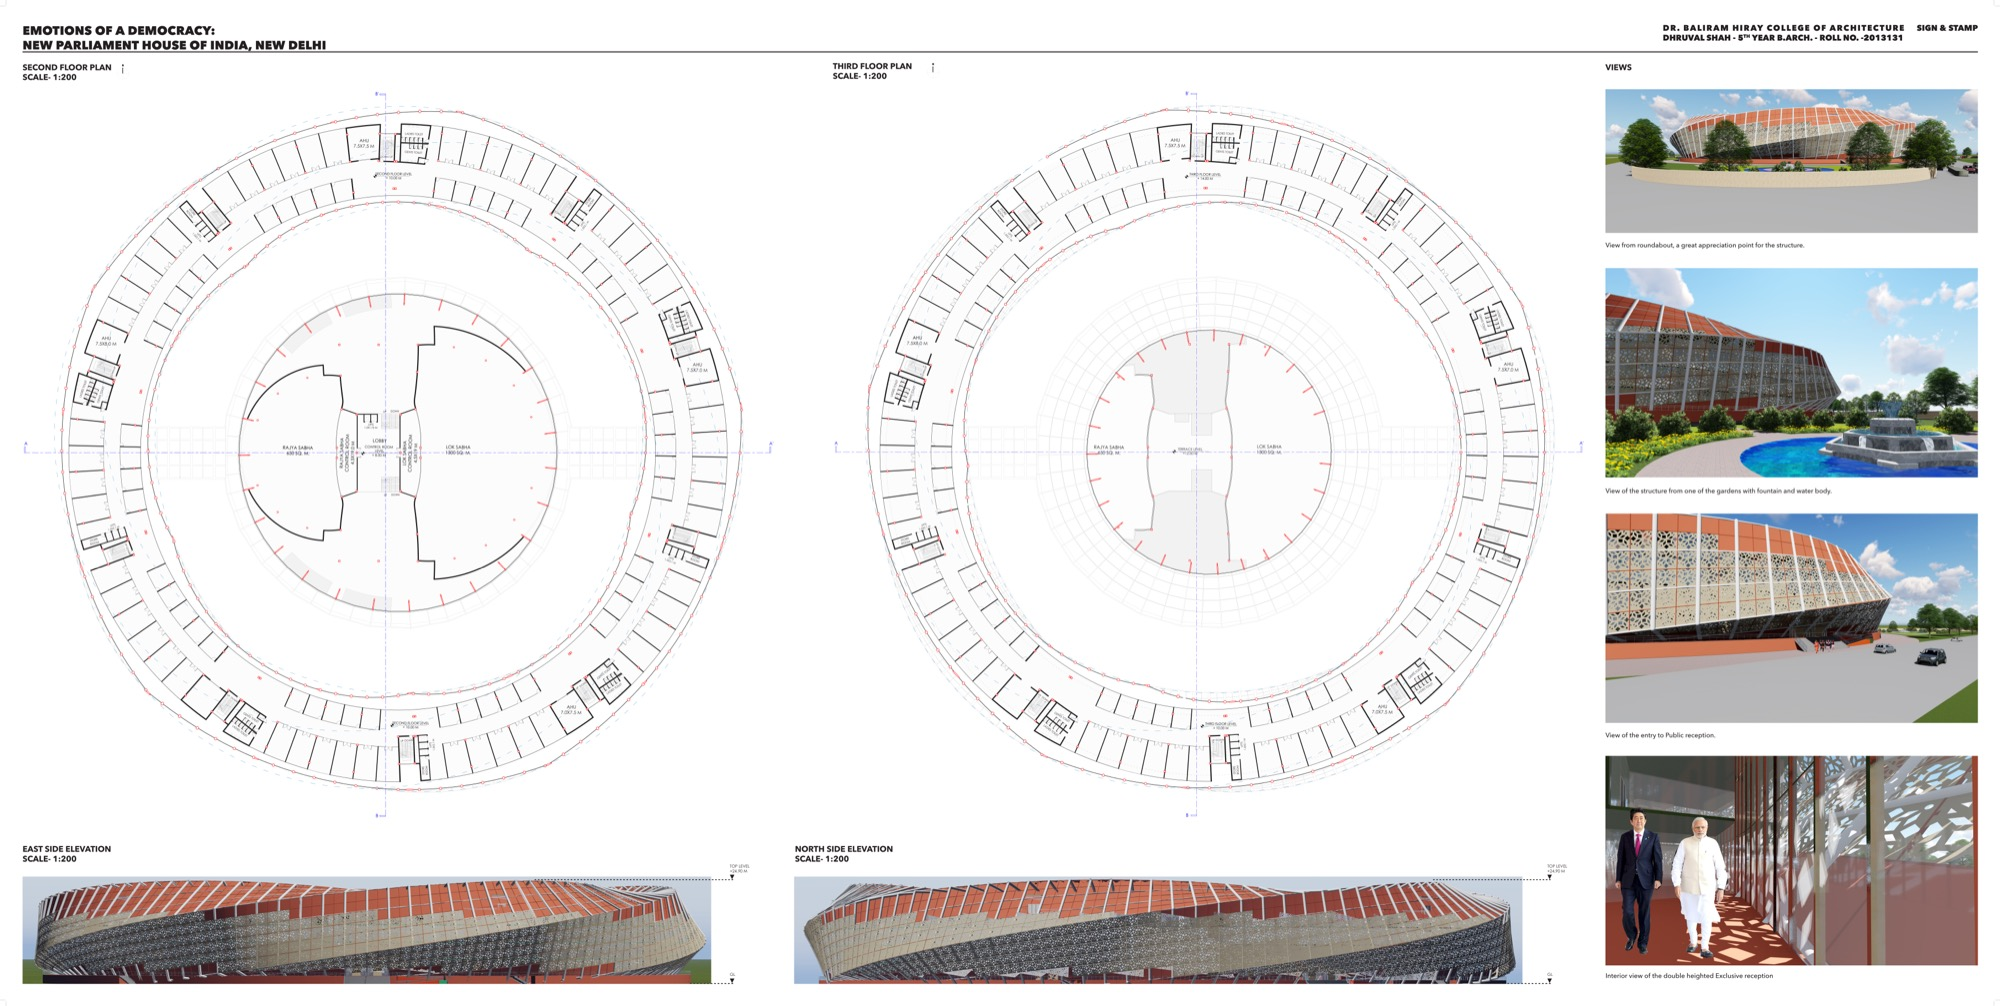 B.Arch Thesis: Emotions of a Democracy: New Parliament House of India, New Delhi Dhruval Shah 20